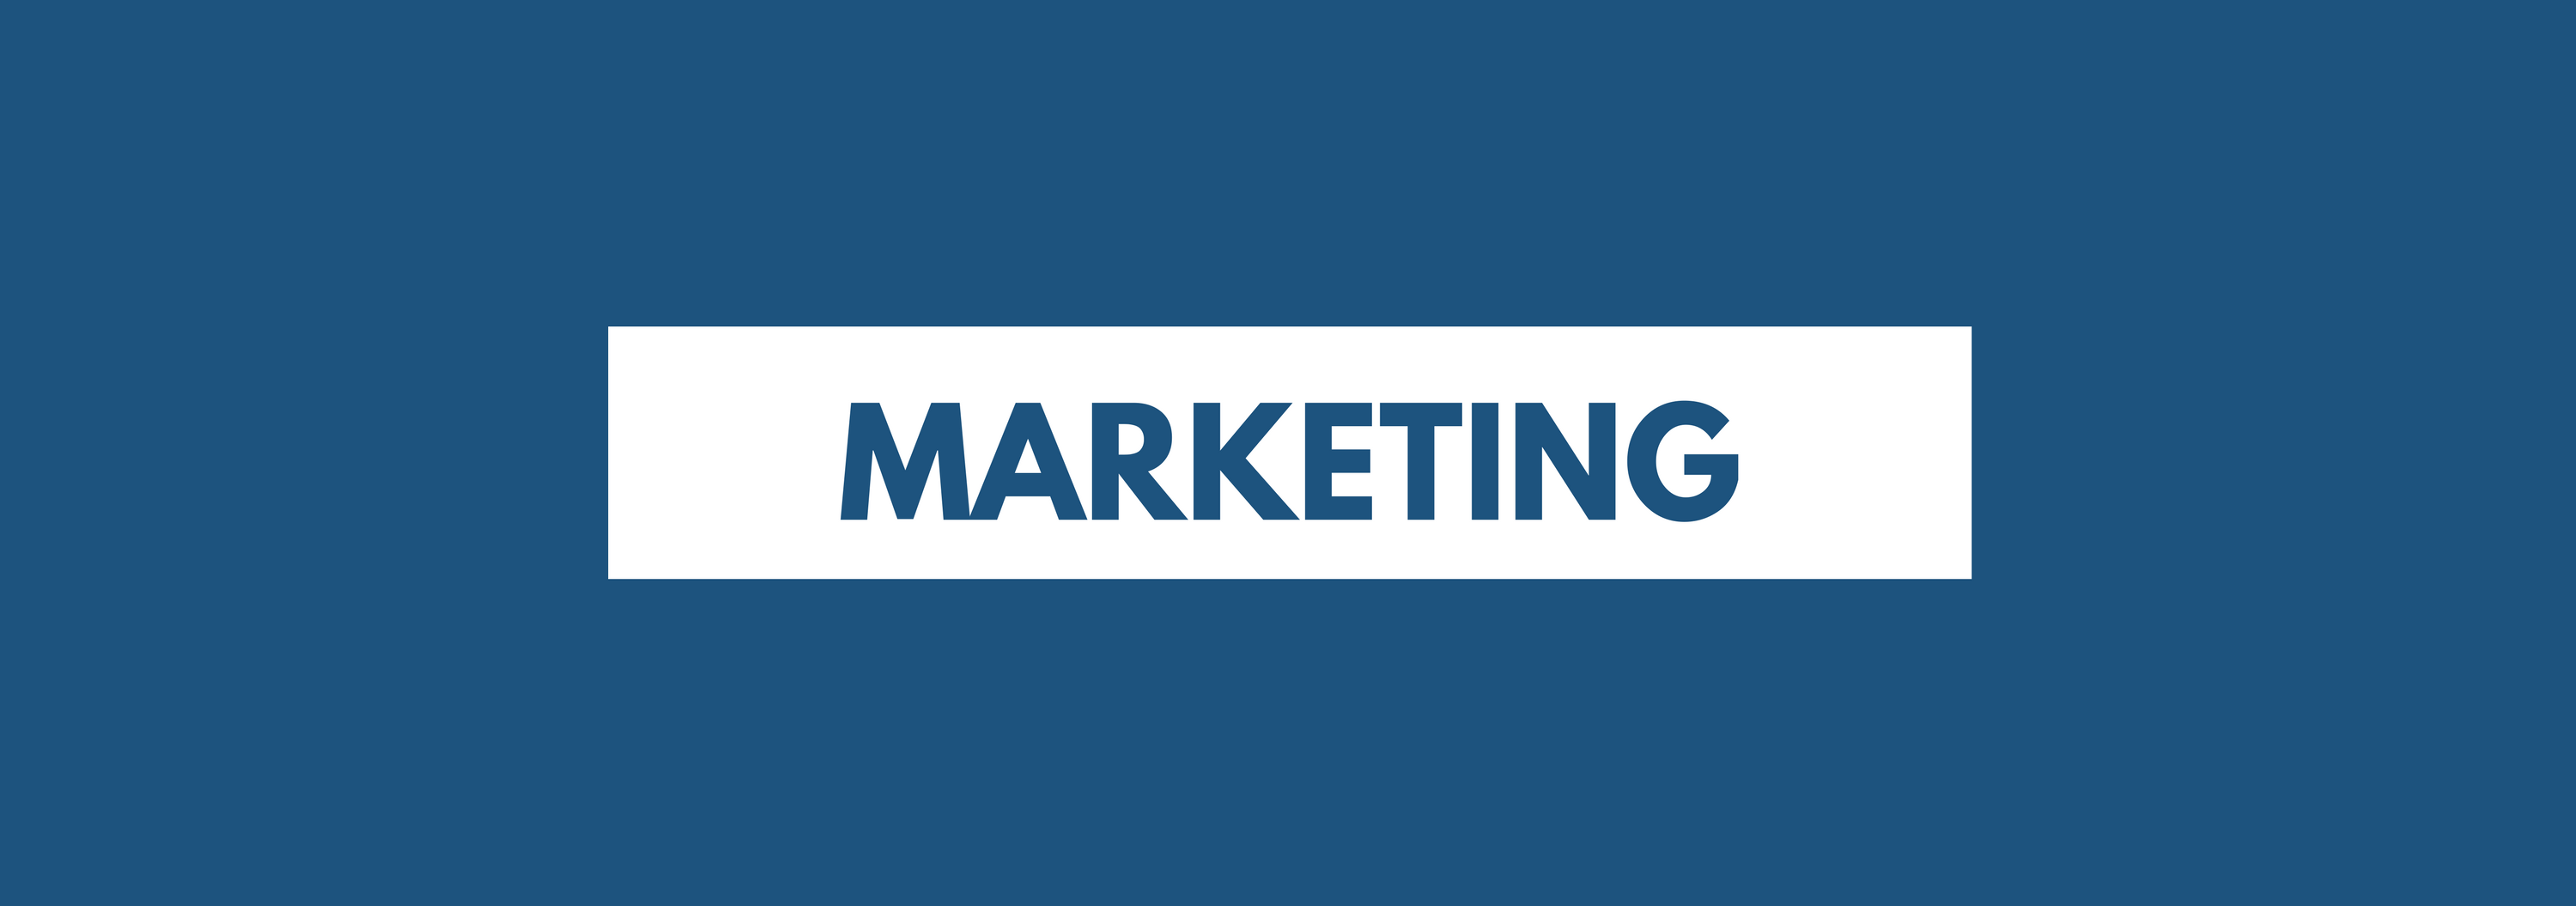 Search Engine Marketing Beyond AdWords: The Other Digital Marketing Options